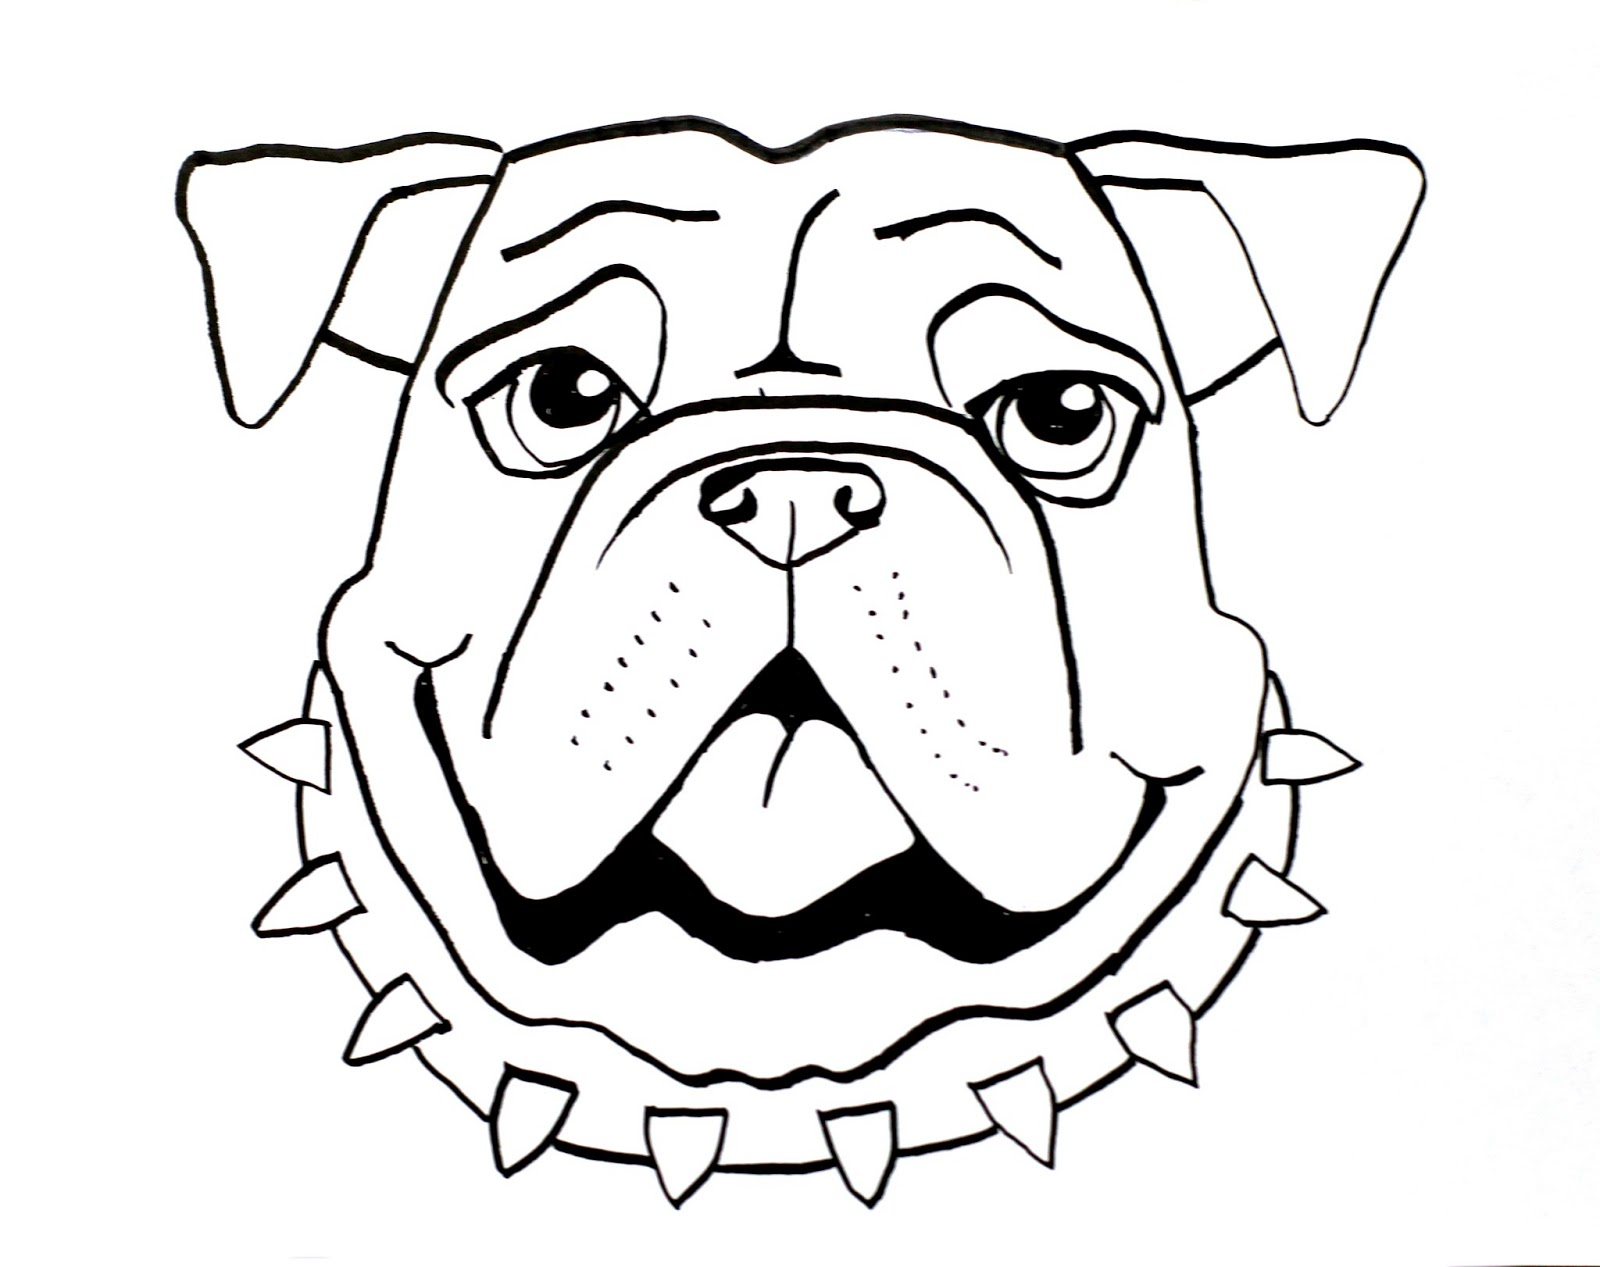 Bulldog Face Sketch Templates